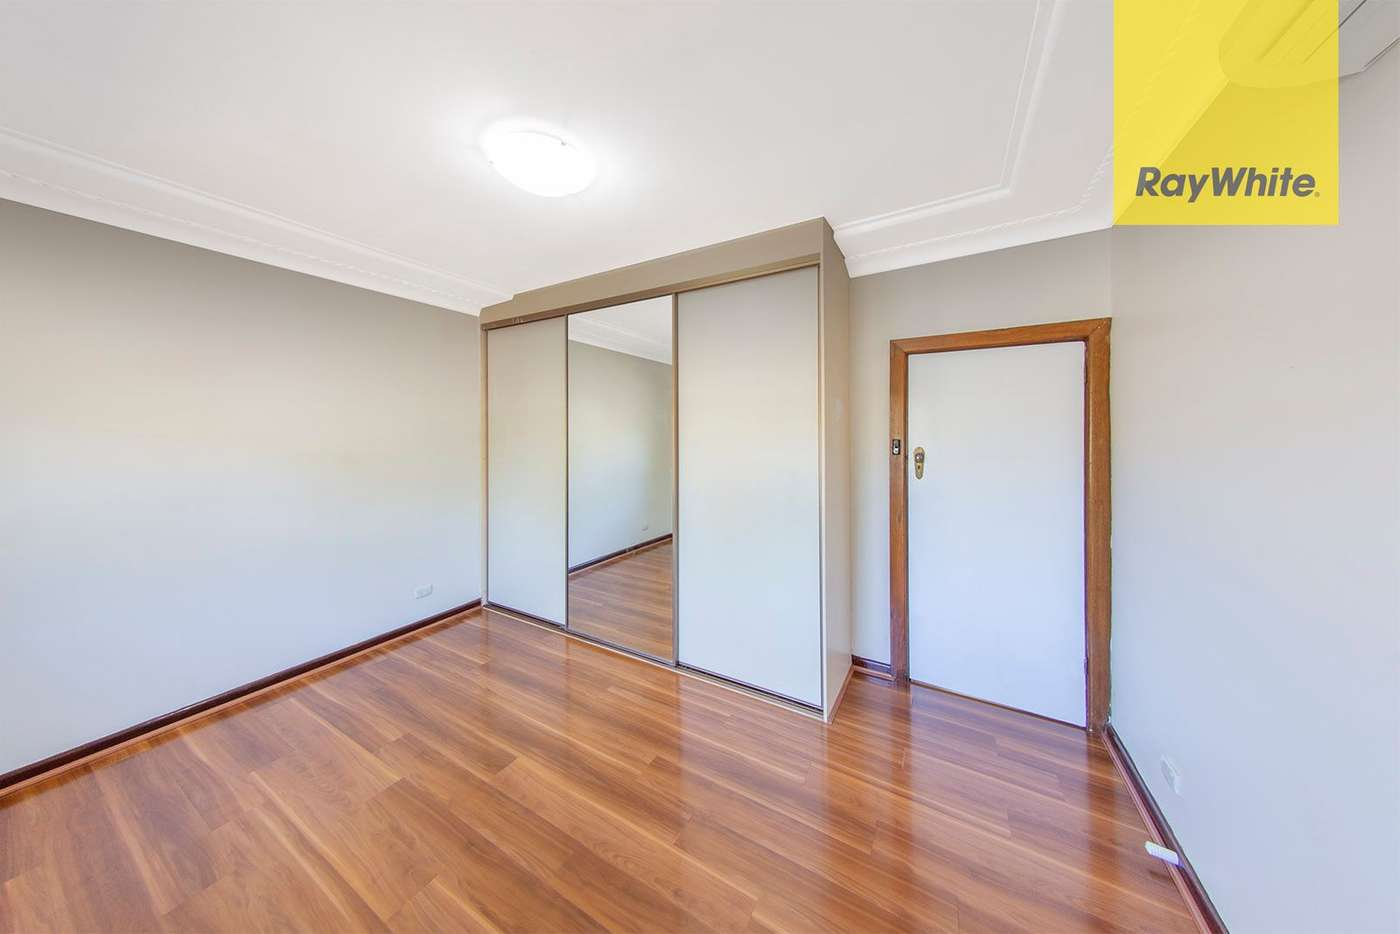 Sixth view of Homely house listing, 14 Brickfield Street, North Parramatta NSW 2151